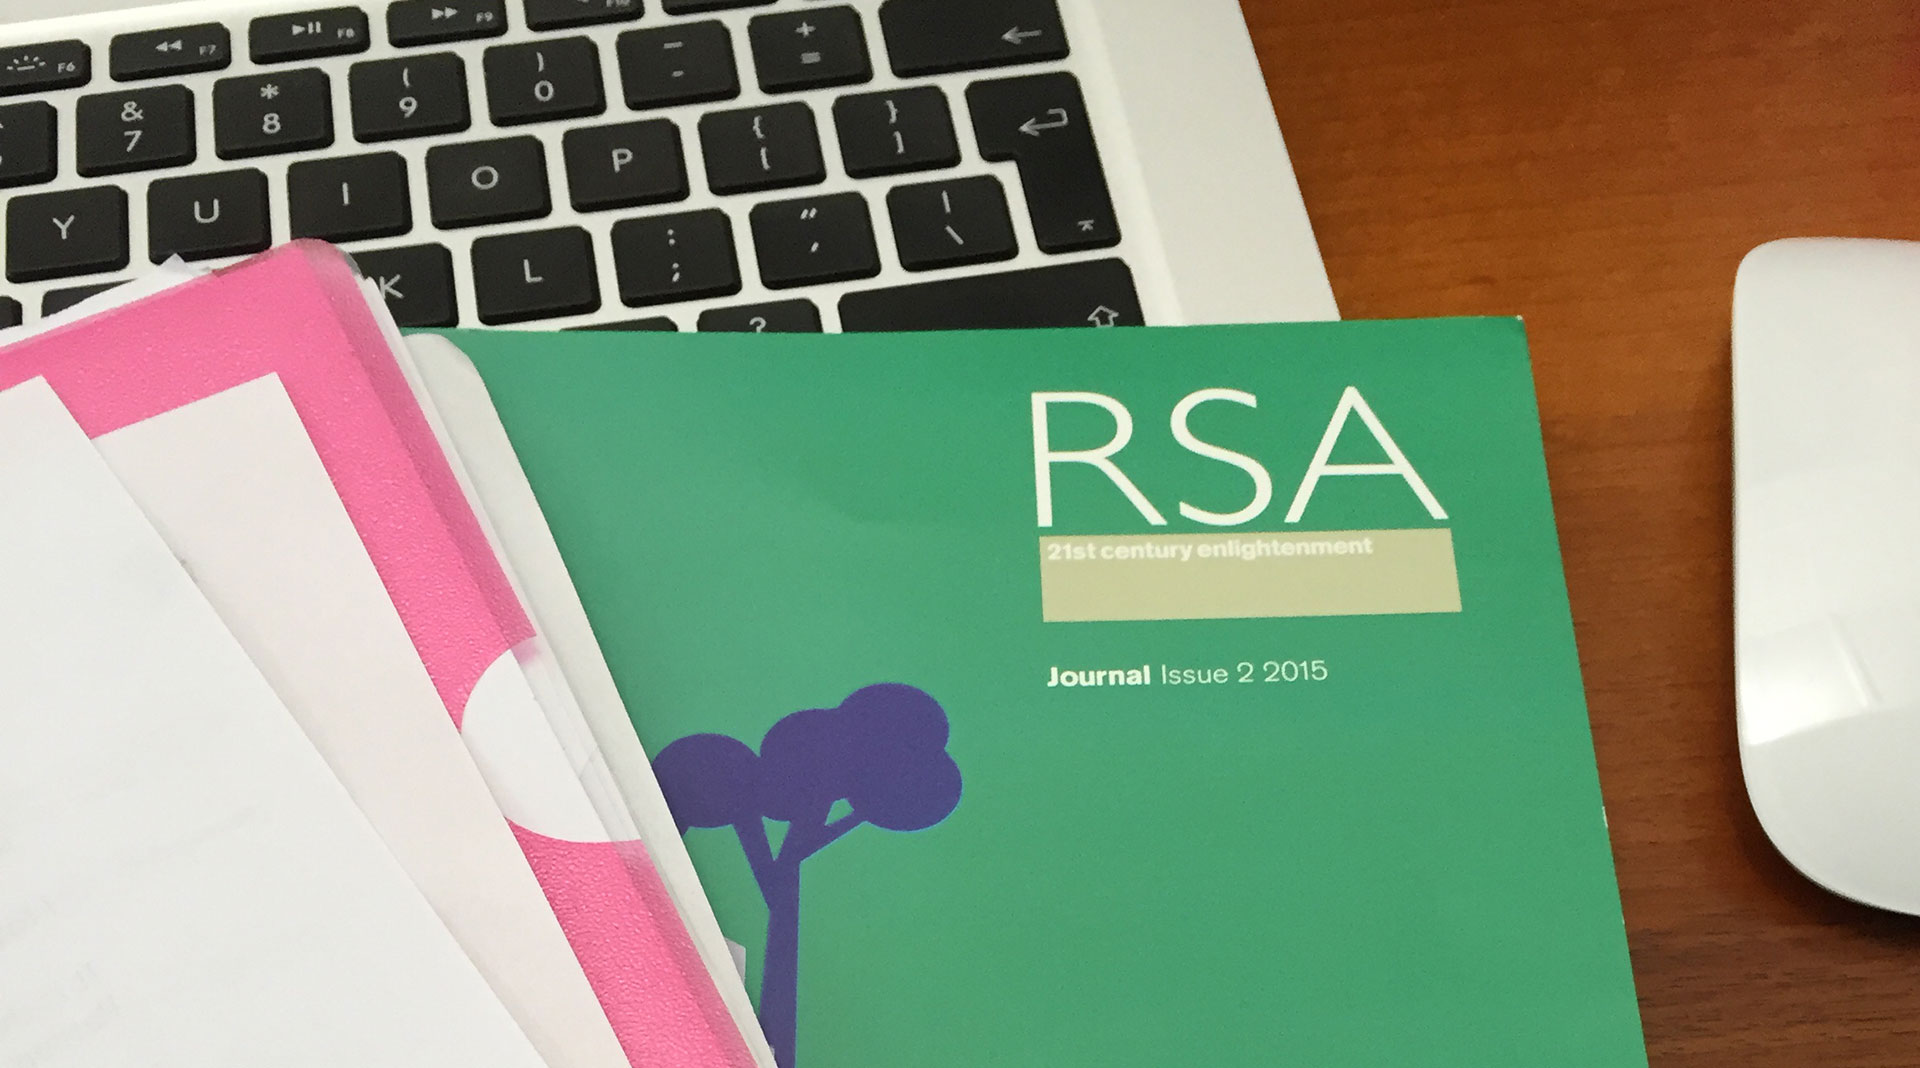 Royal Society of Arts, Manufactures and Commerce journal